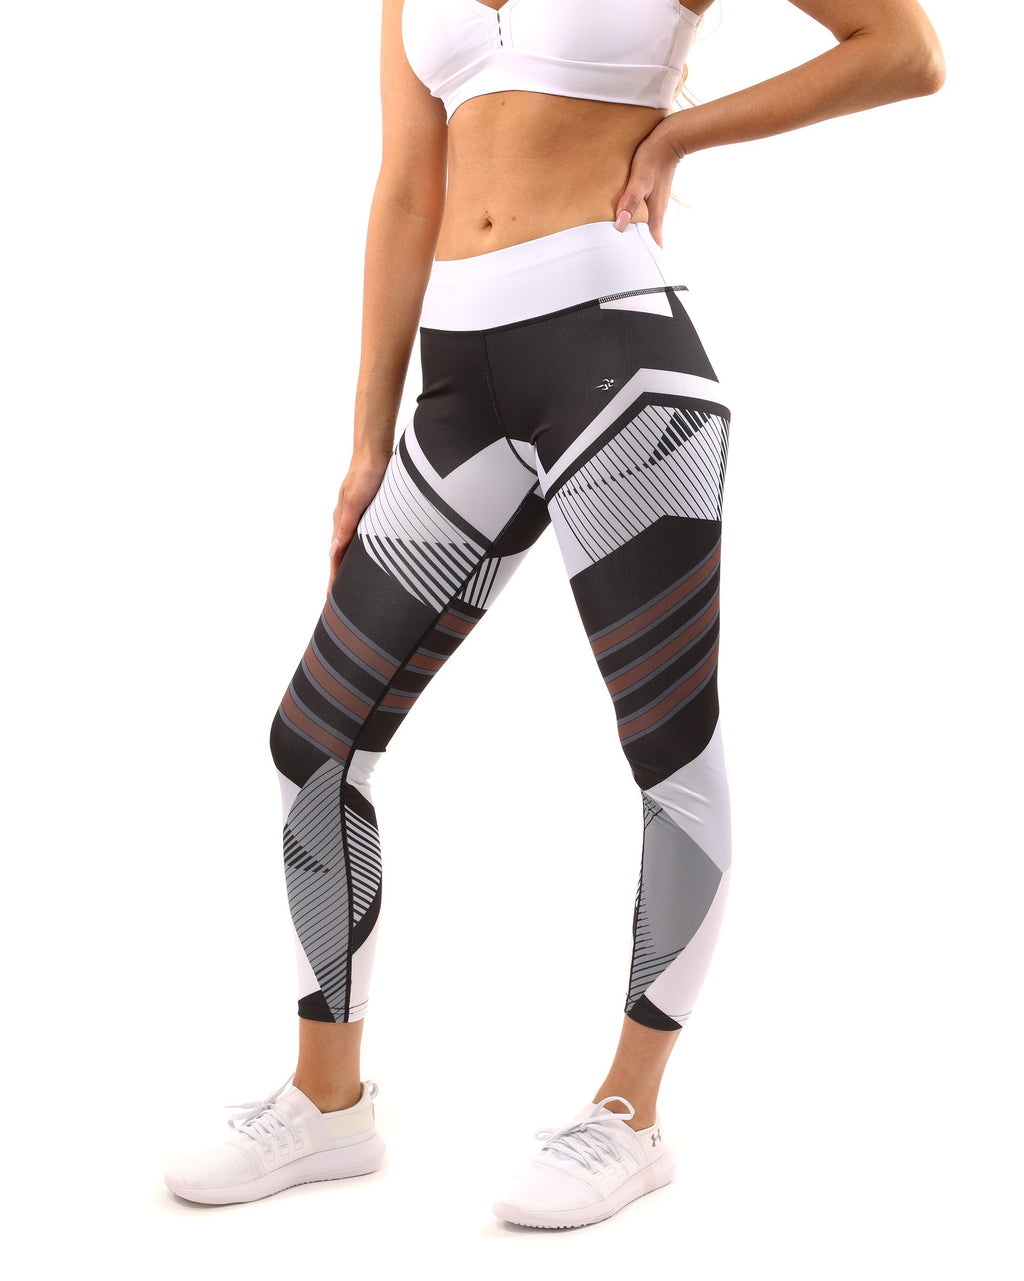 Coronado Leggings